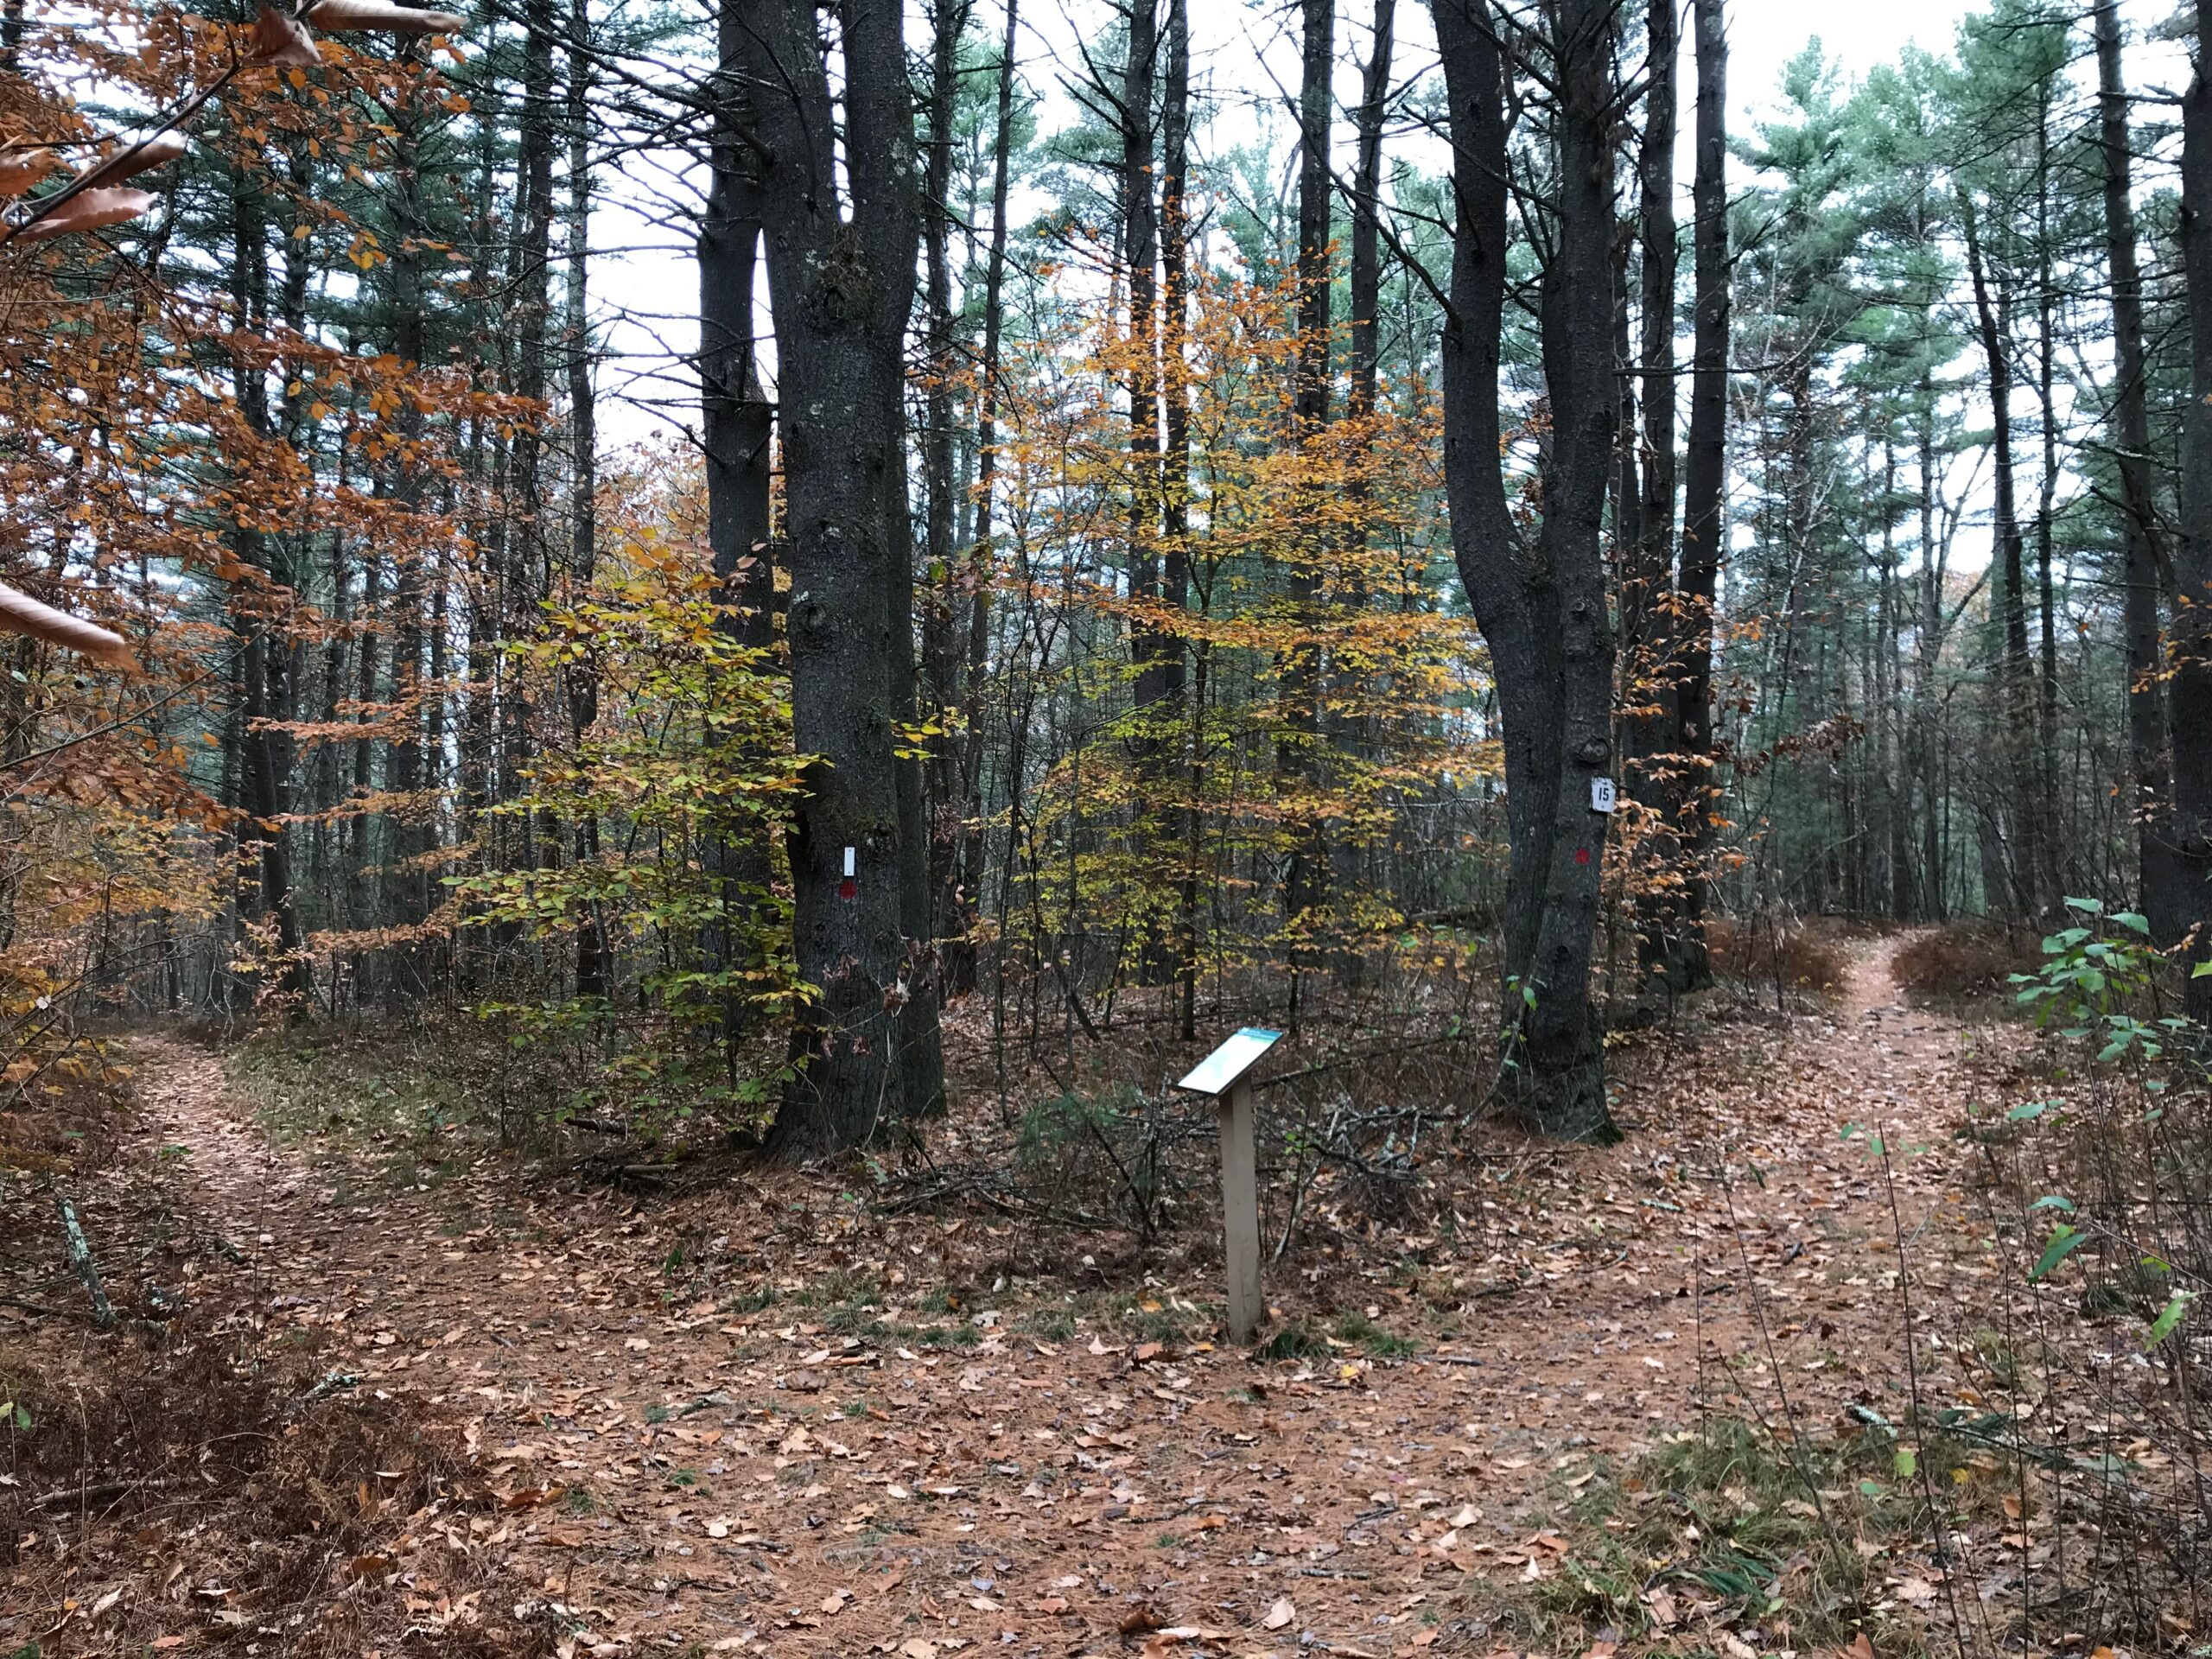 Late fall foliage along trail at Shattuck Reservation